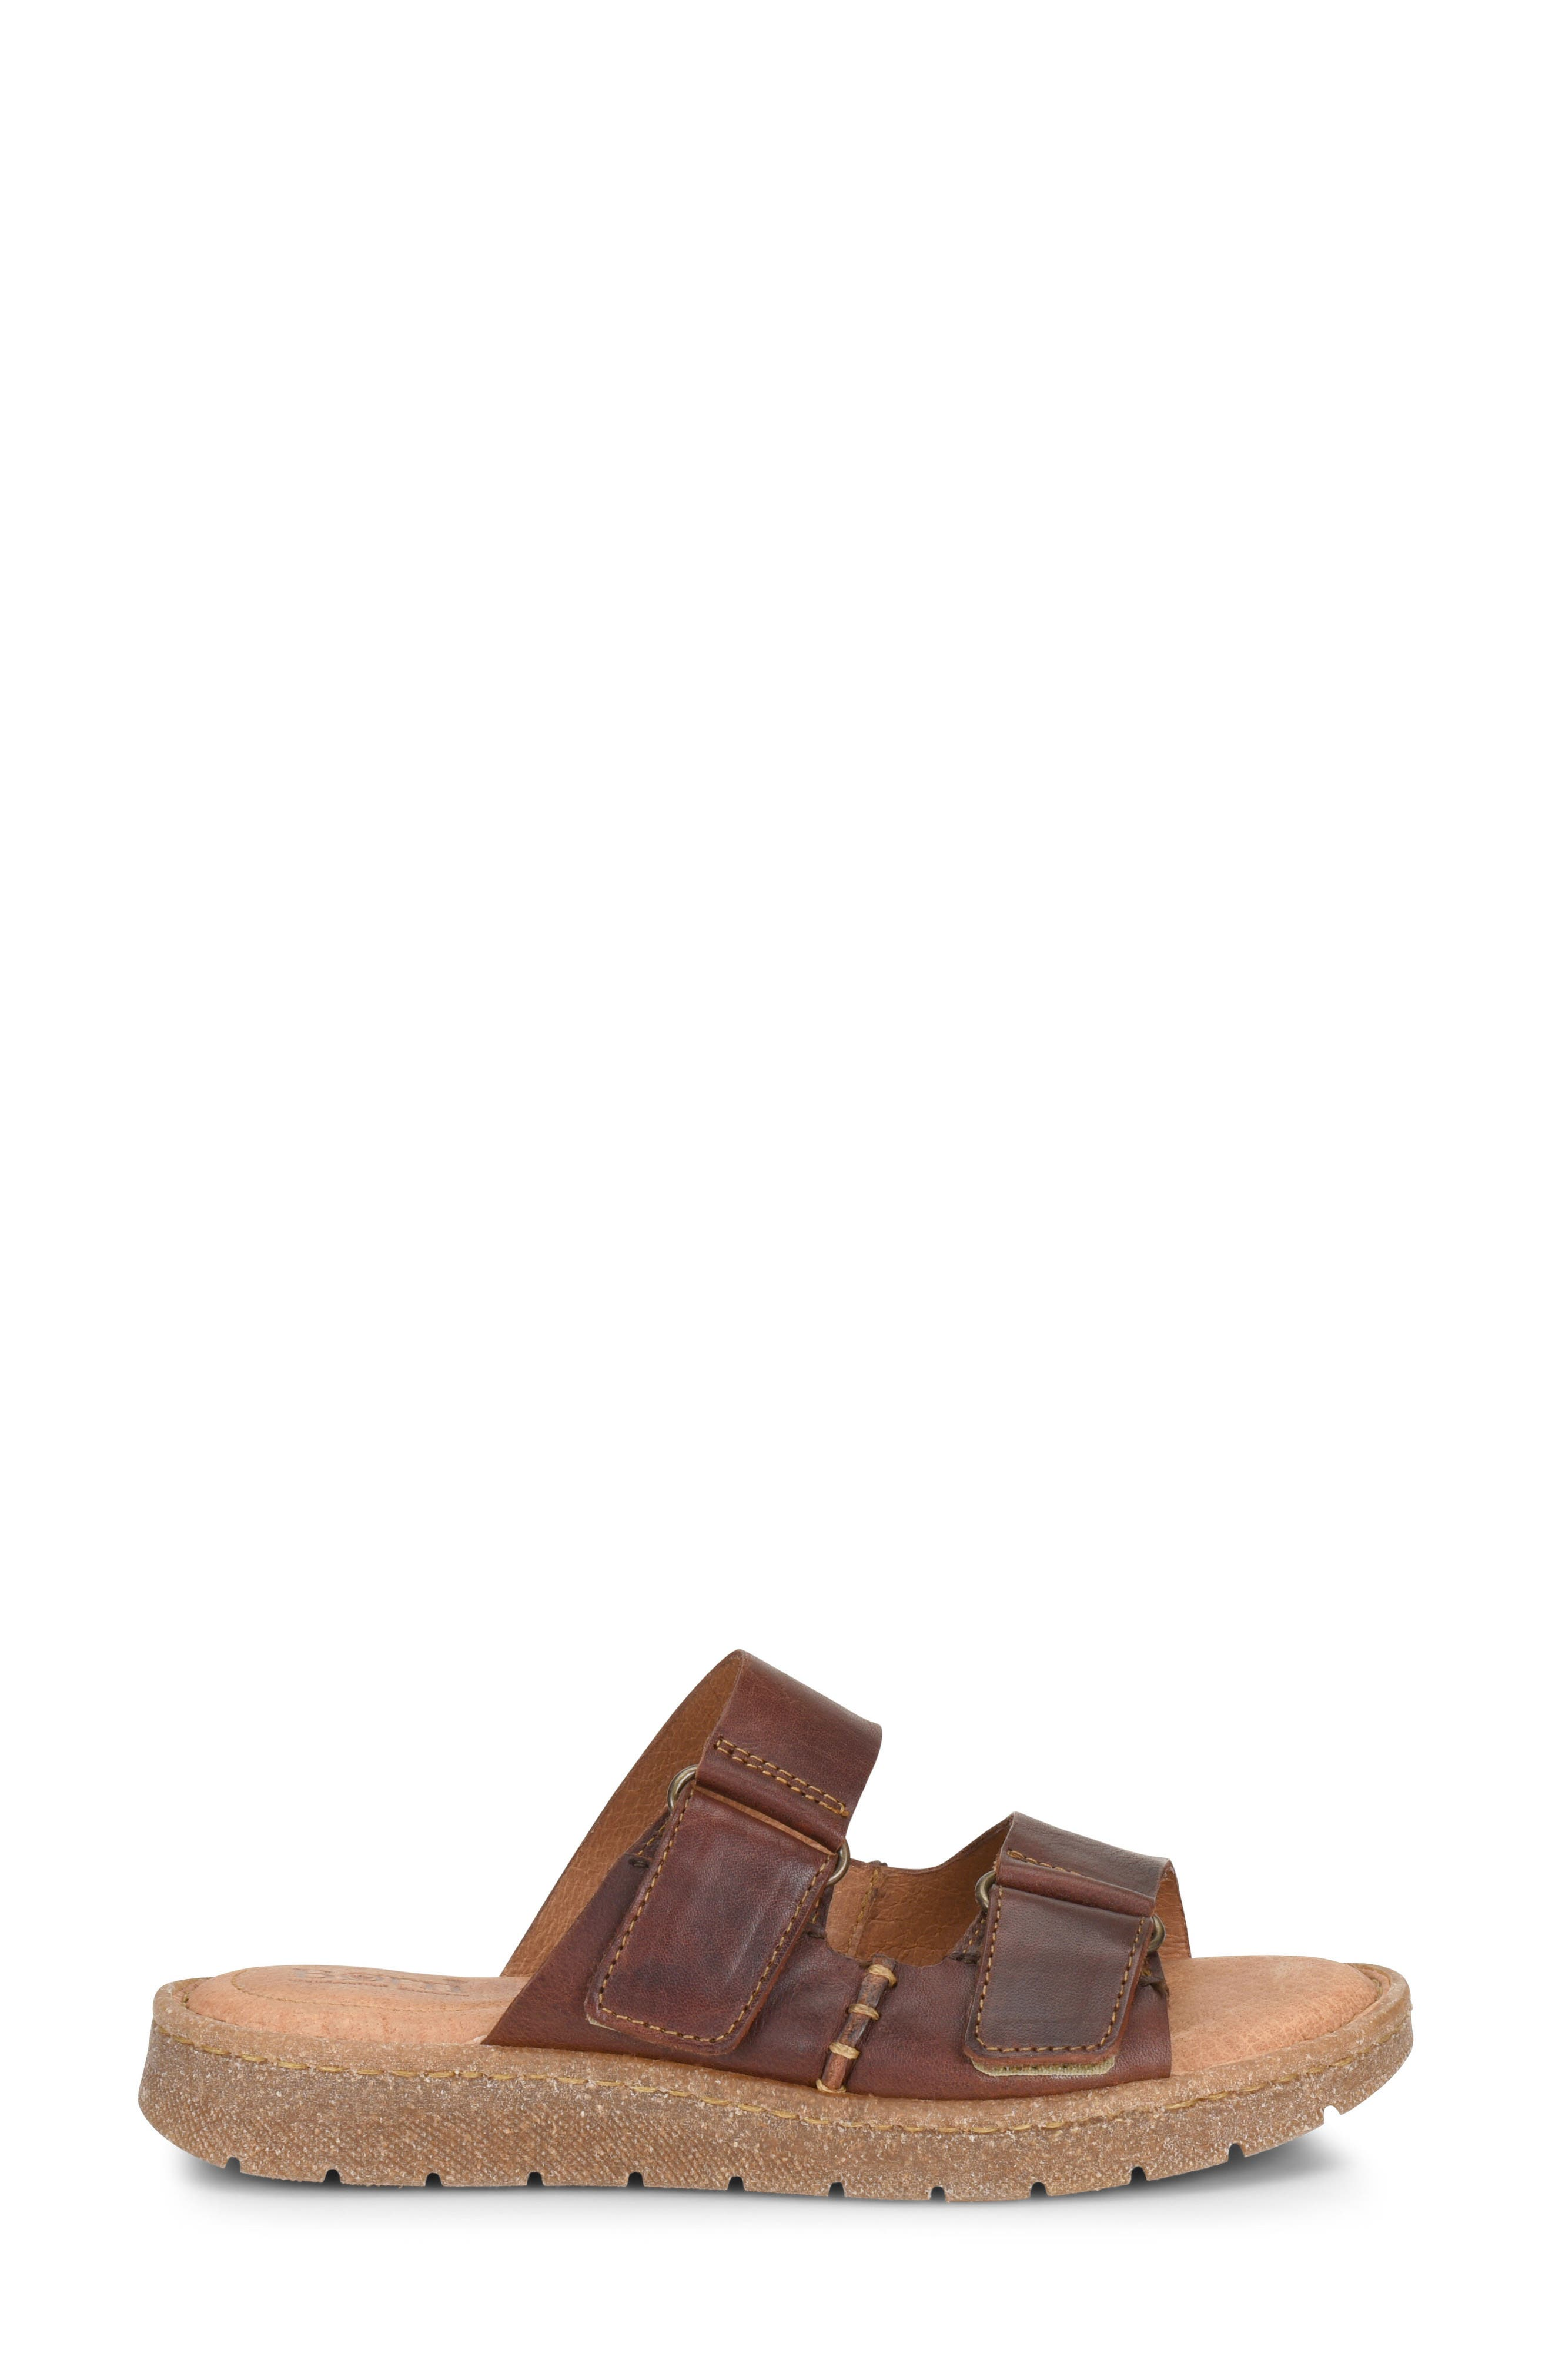 Dominica Sandal,                             Alternate thumbnail 3, color,                             Rust Leather